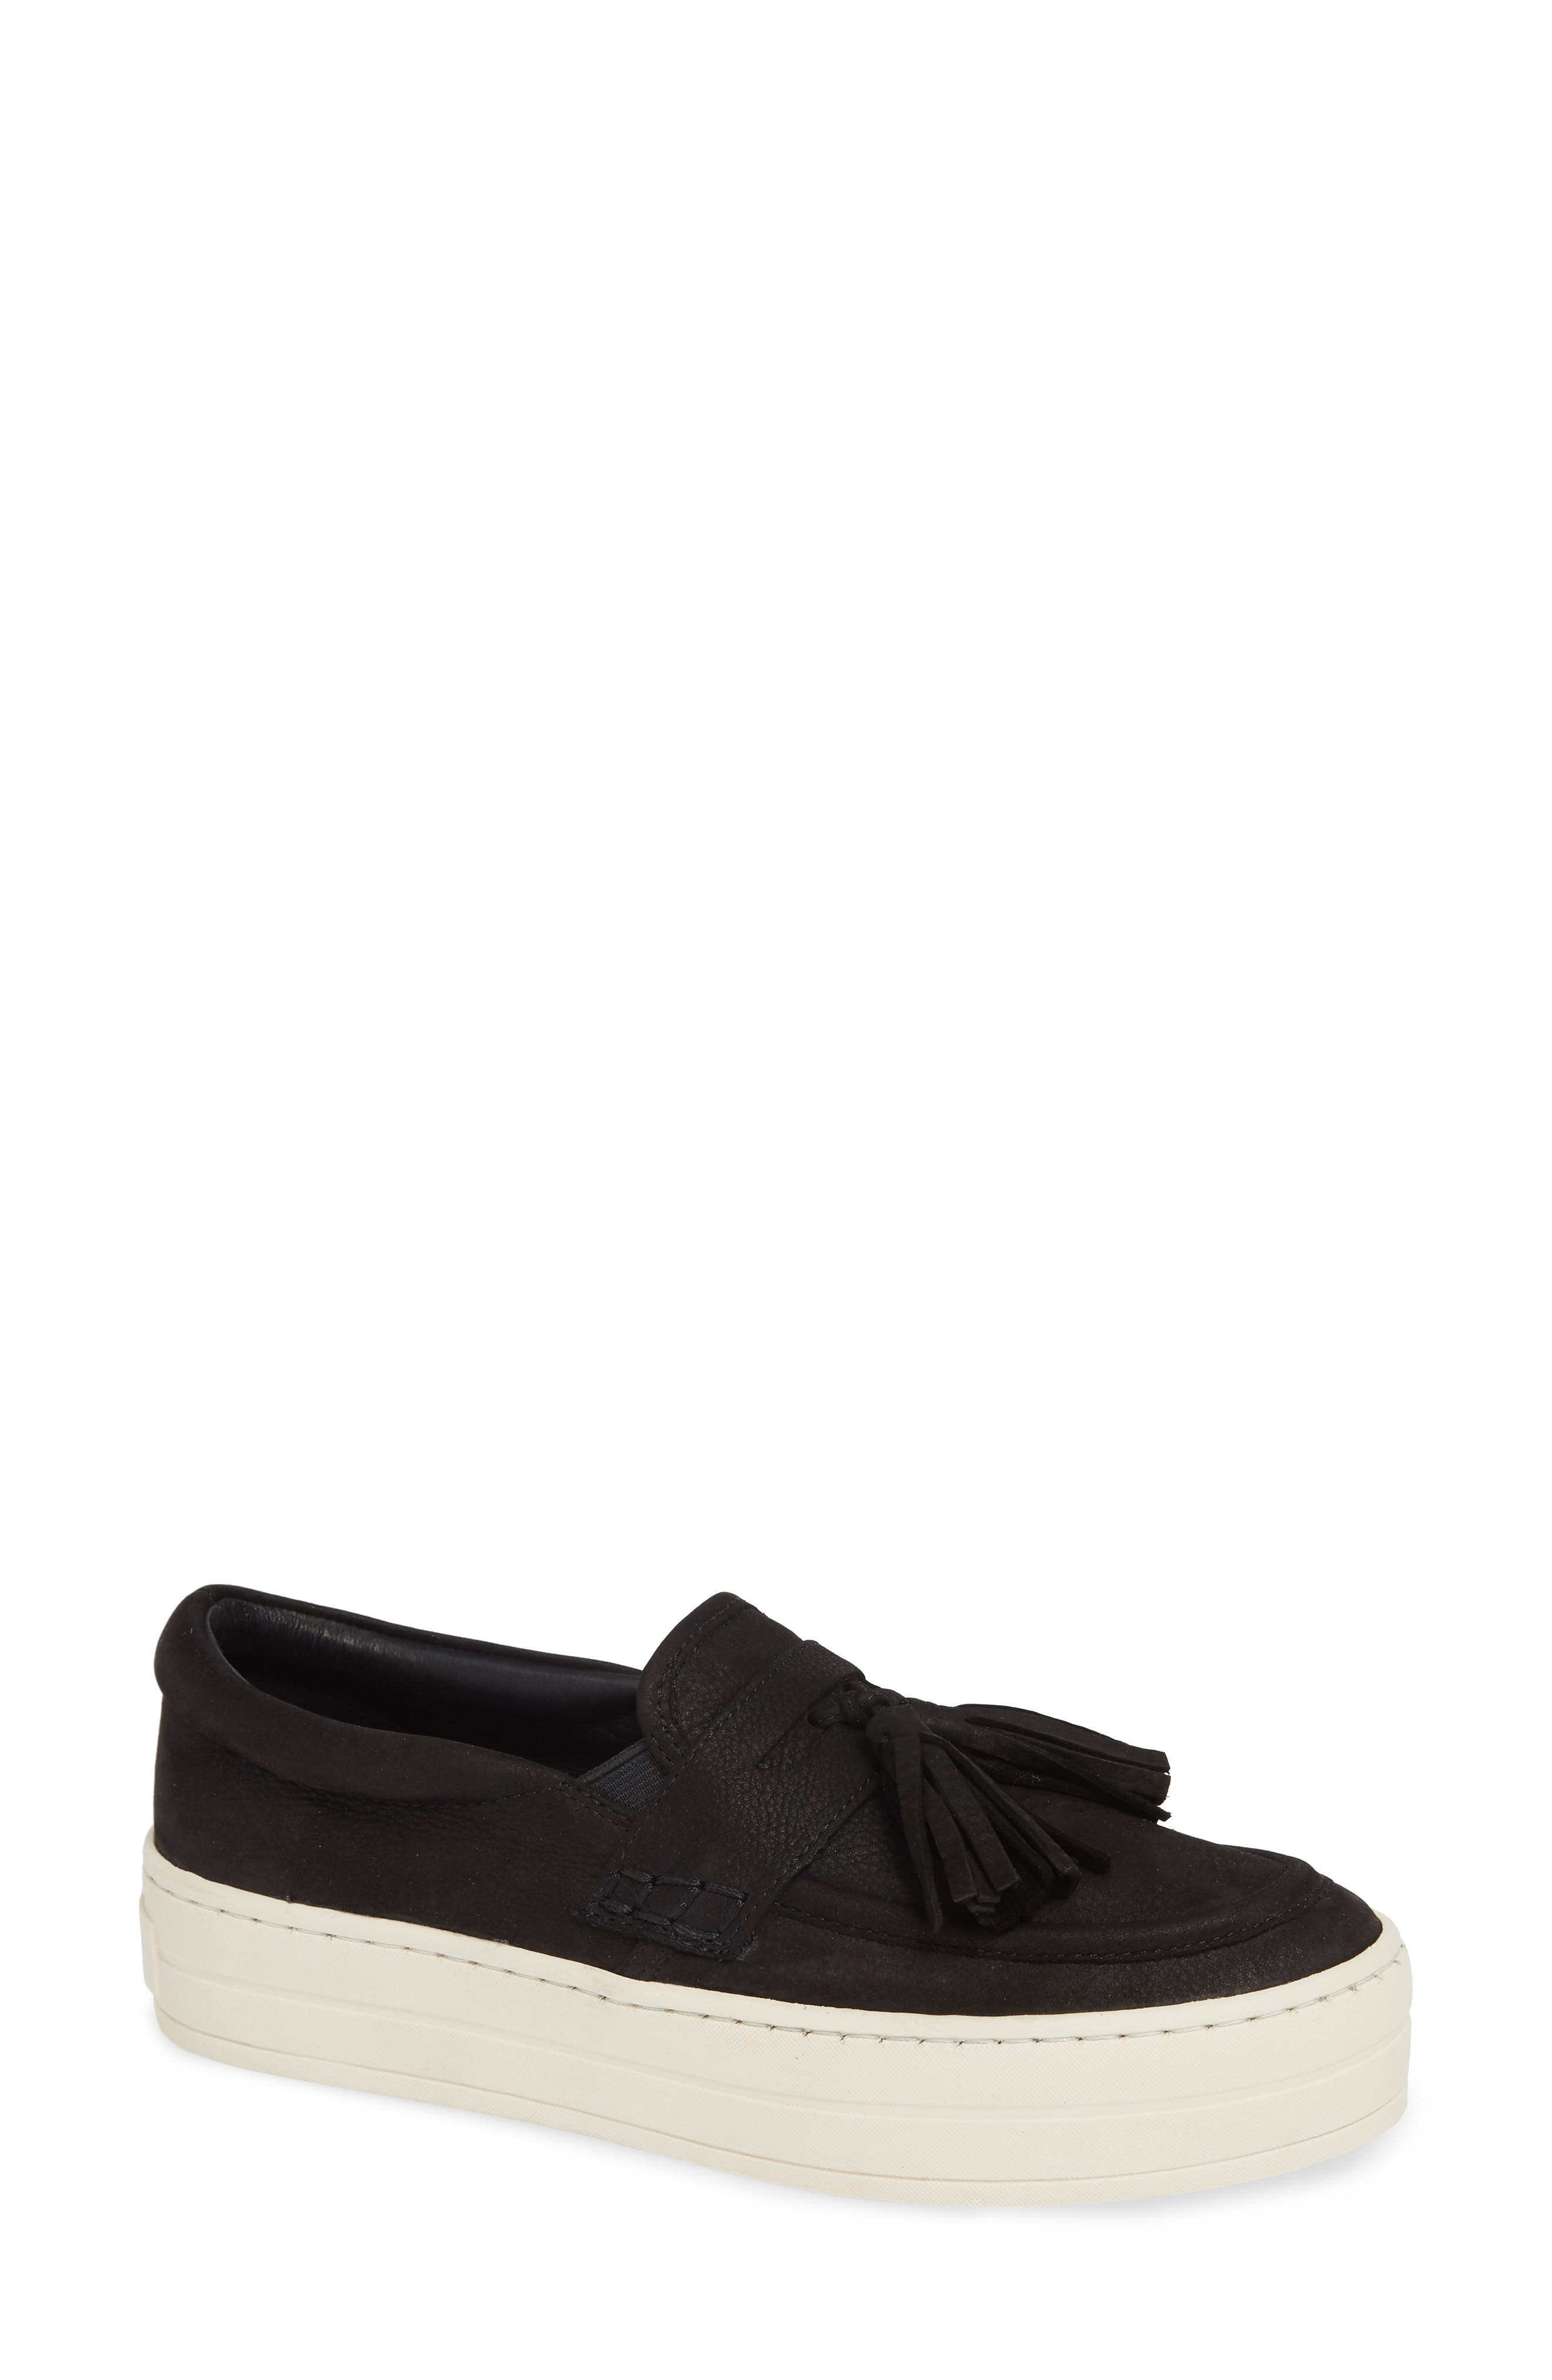 JSLIDES Hallie Slip-On Sneaker in Black Nubuck